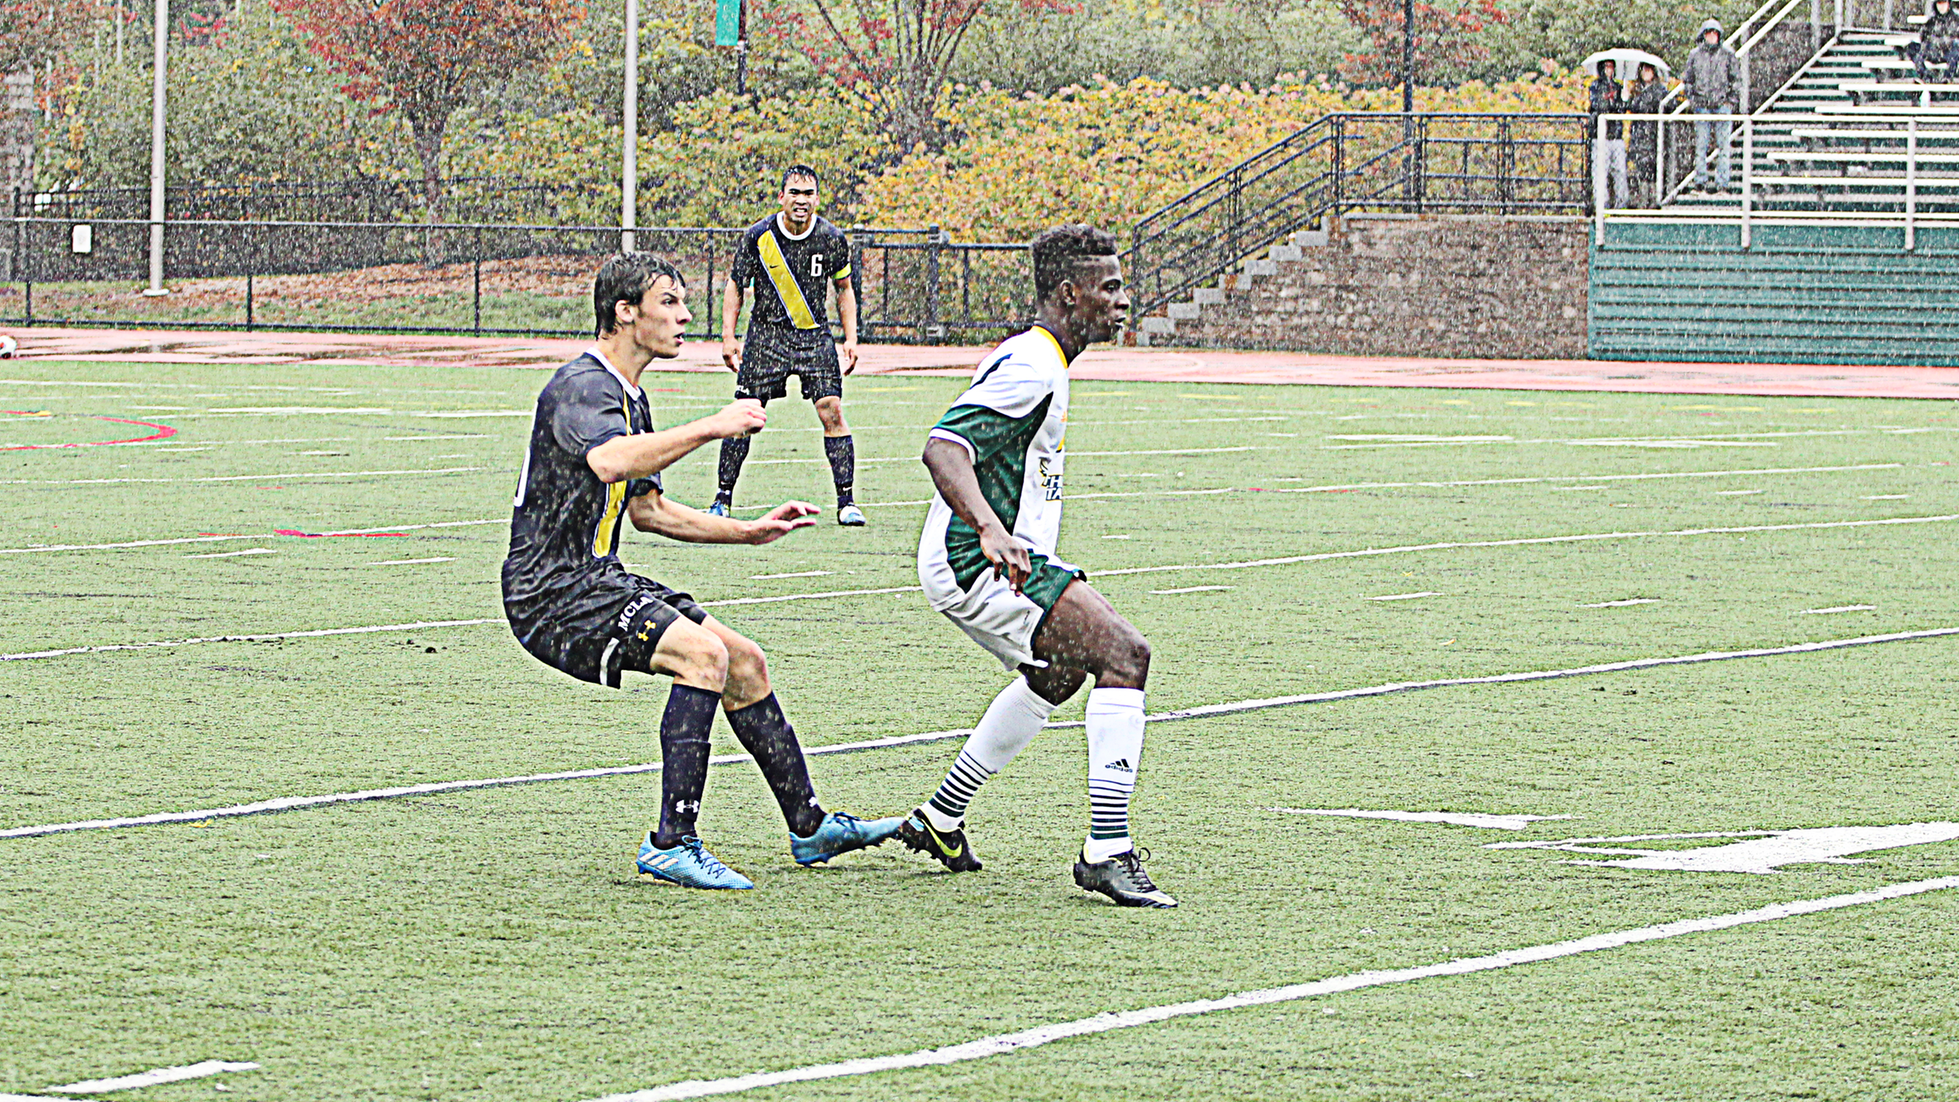 Fitchburg State Upends Mass. Maritime, 2-1